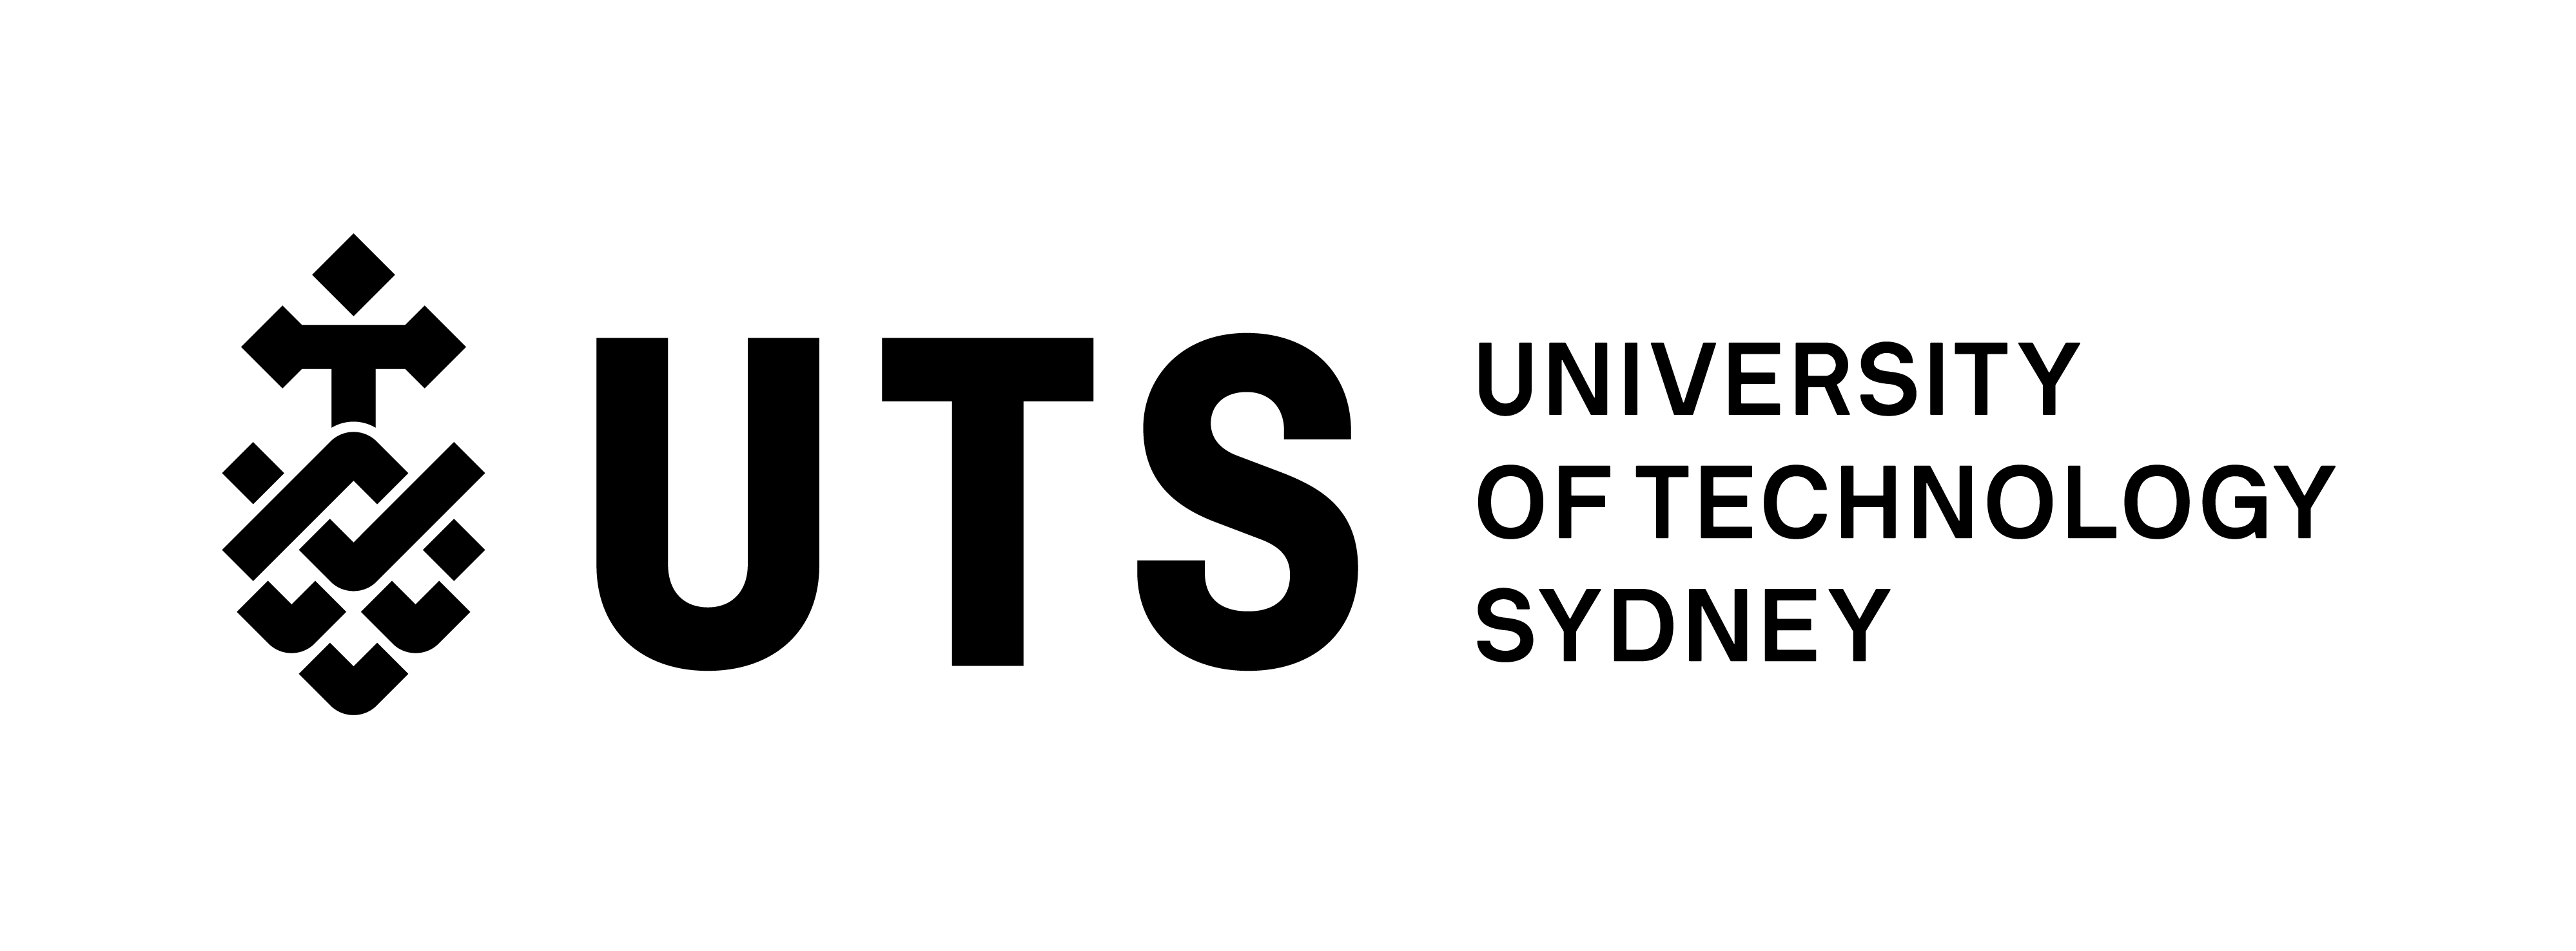 University of Technology Sydney - Bachelor of Arts / Bachelor of Education